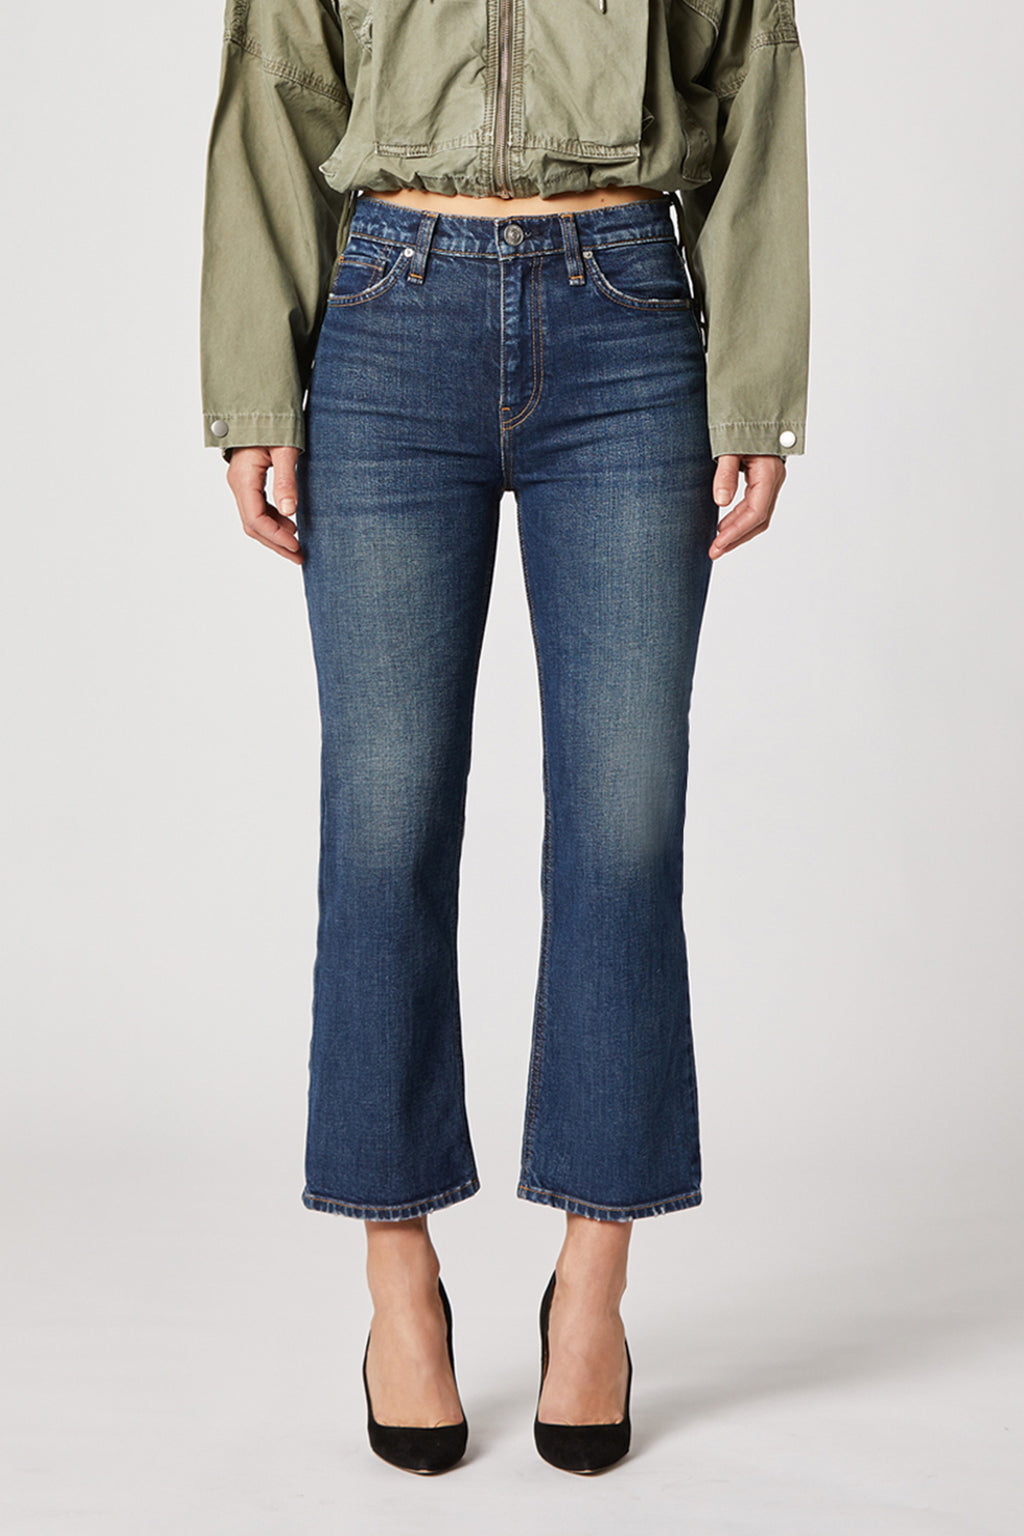 Remi High-Rise Straight Cropped Jean